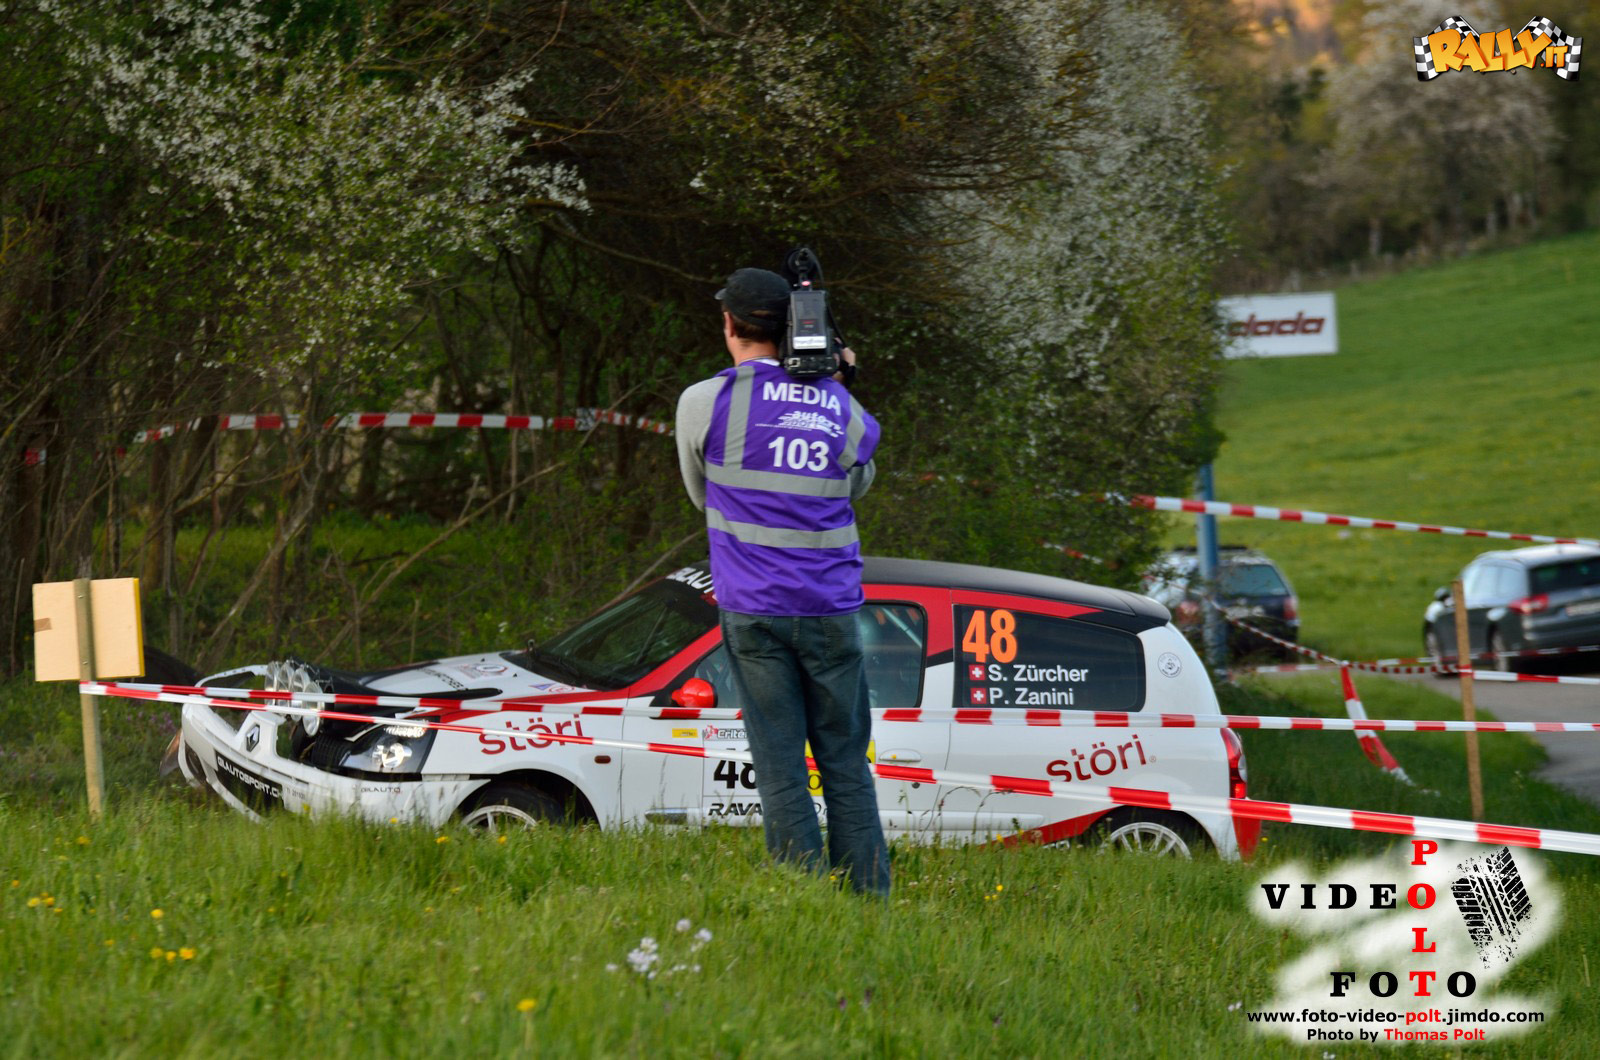 052-Criterium-Jurassien-thomas-polt-2014-rally_it.jpg